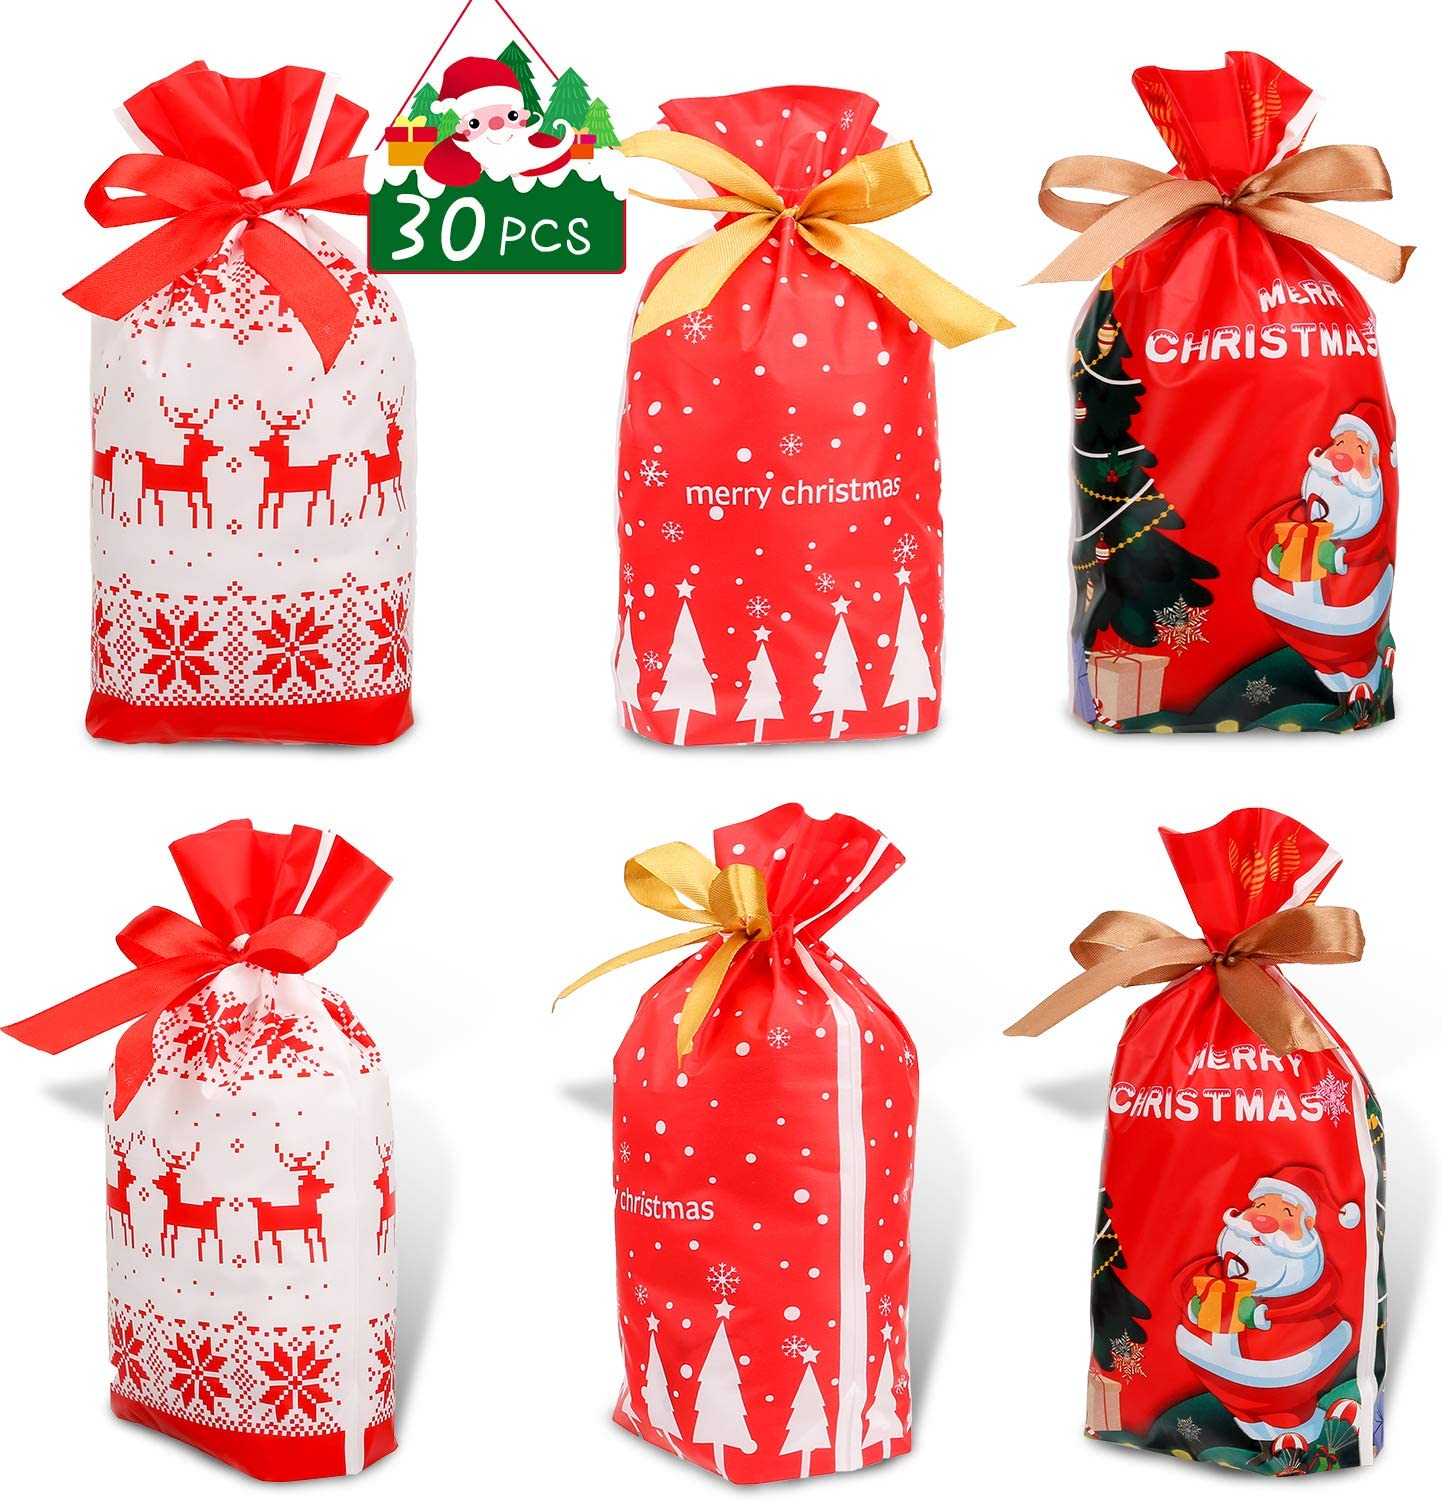 Konsait 30Count Christmas Candy Bags, Christmas Drawstring Gift Bags, Christmas Goody Bags with Bow-Tie, Christmas Holiday Treats Bags Xmas Accessories Christmas Party Favors Supplies Gift Wrapping